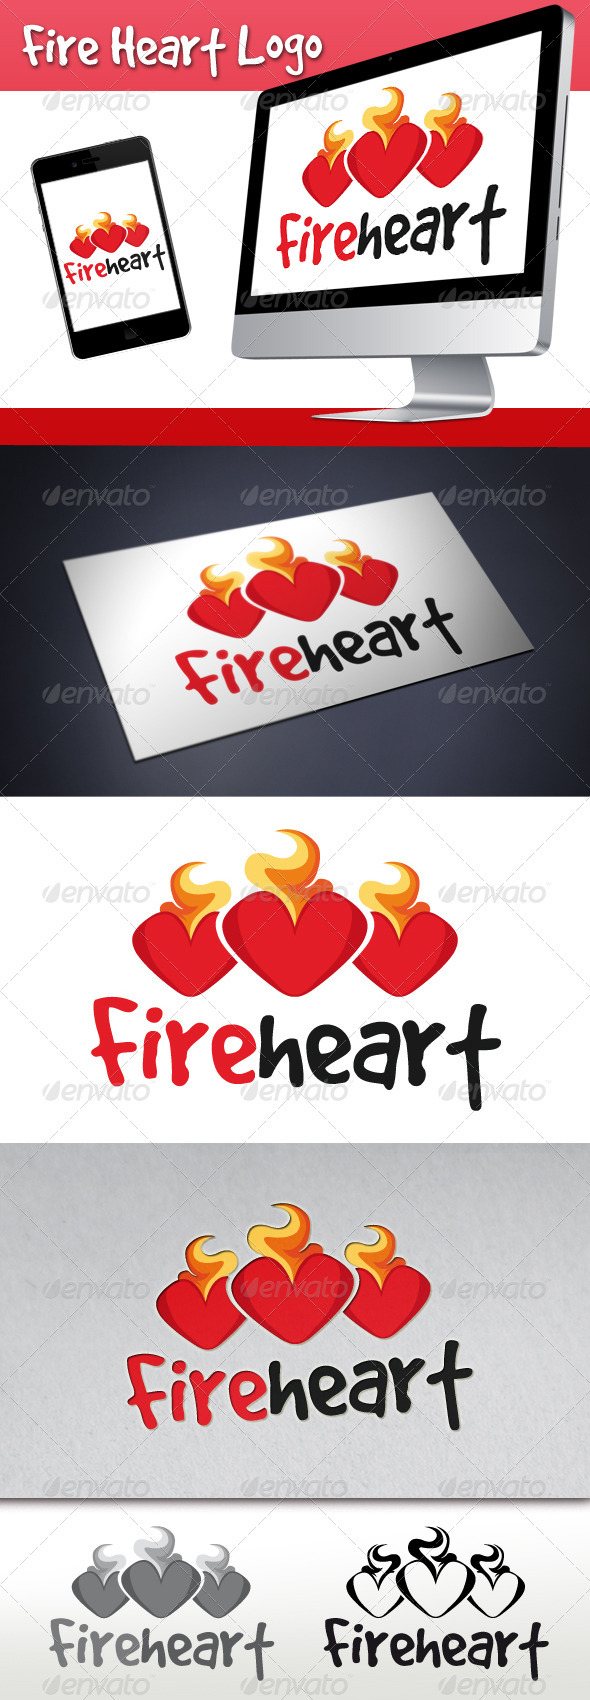 Fire Heart Logo